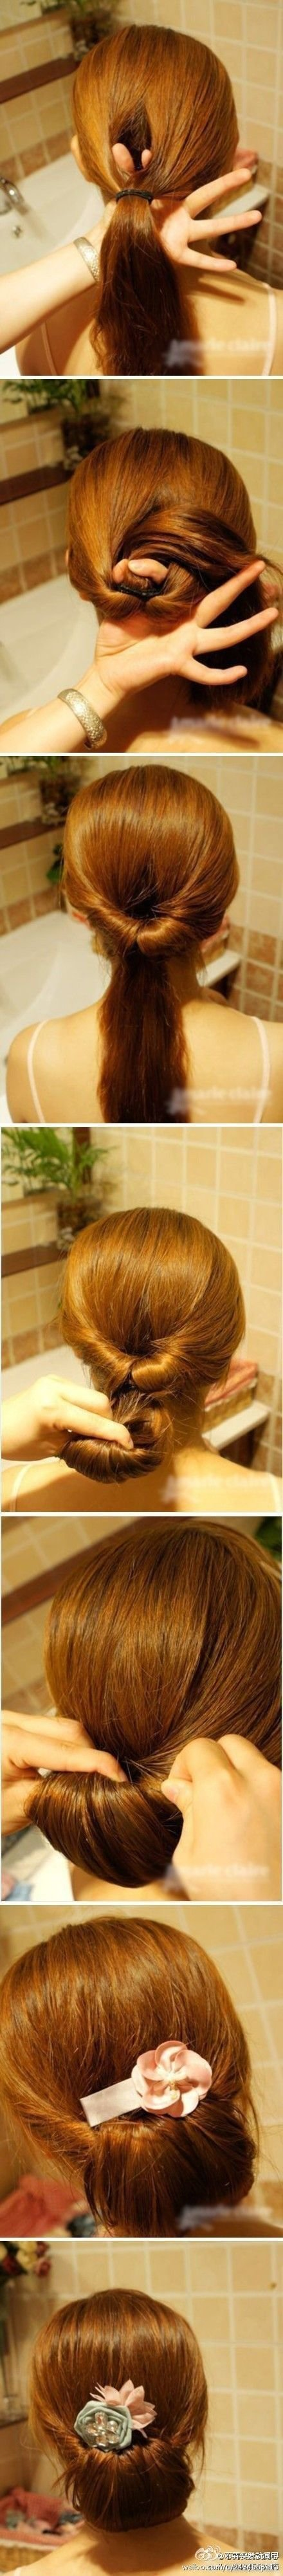 The Best 10 Amazing Step By Step Hairstyles For Medium Length Hair Pictures